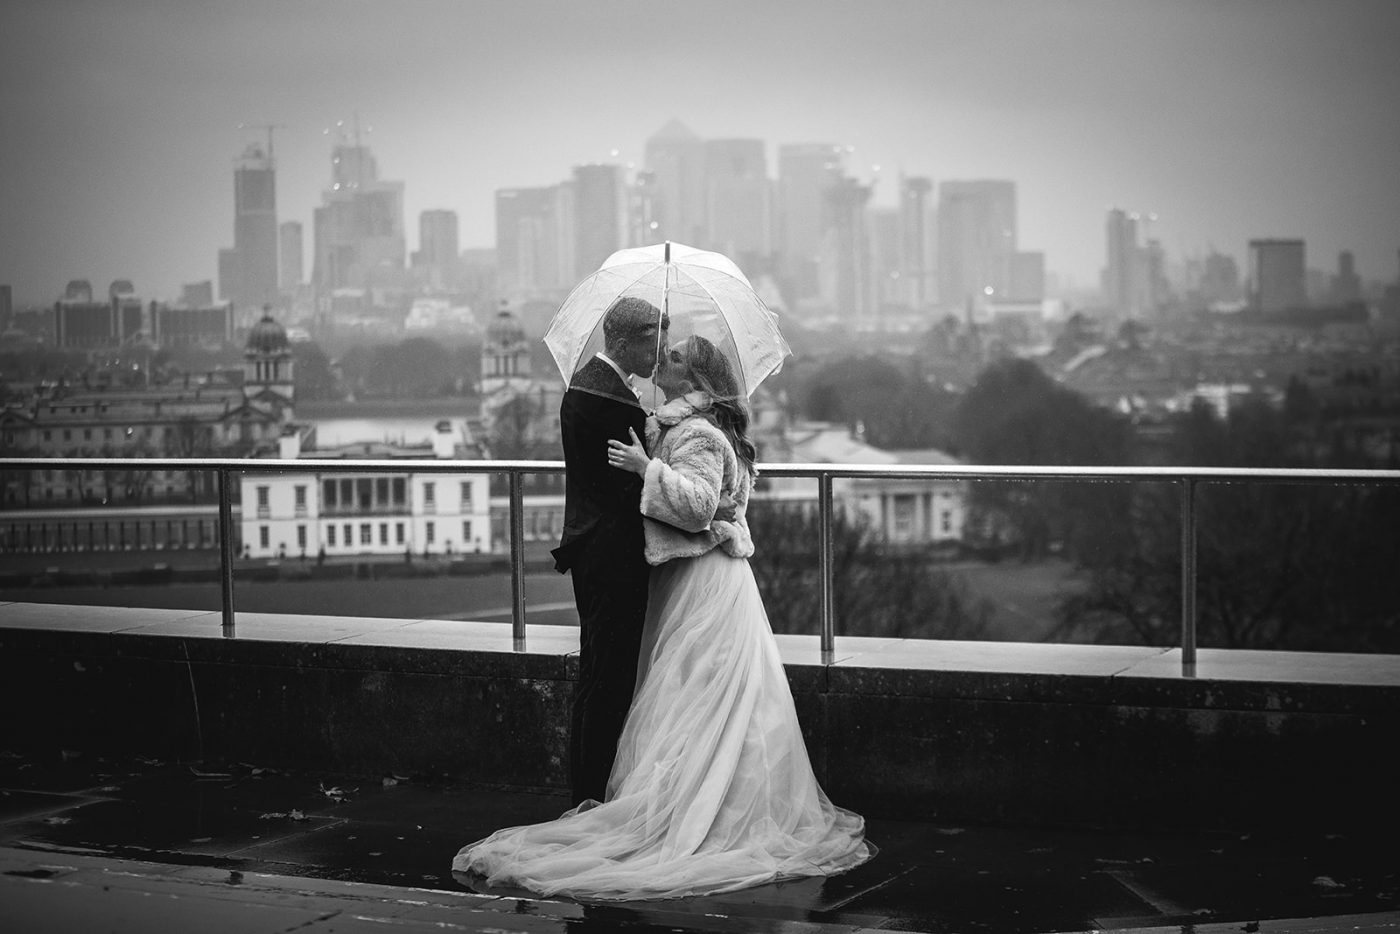 Wedding Photography by Doville Gail Photography